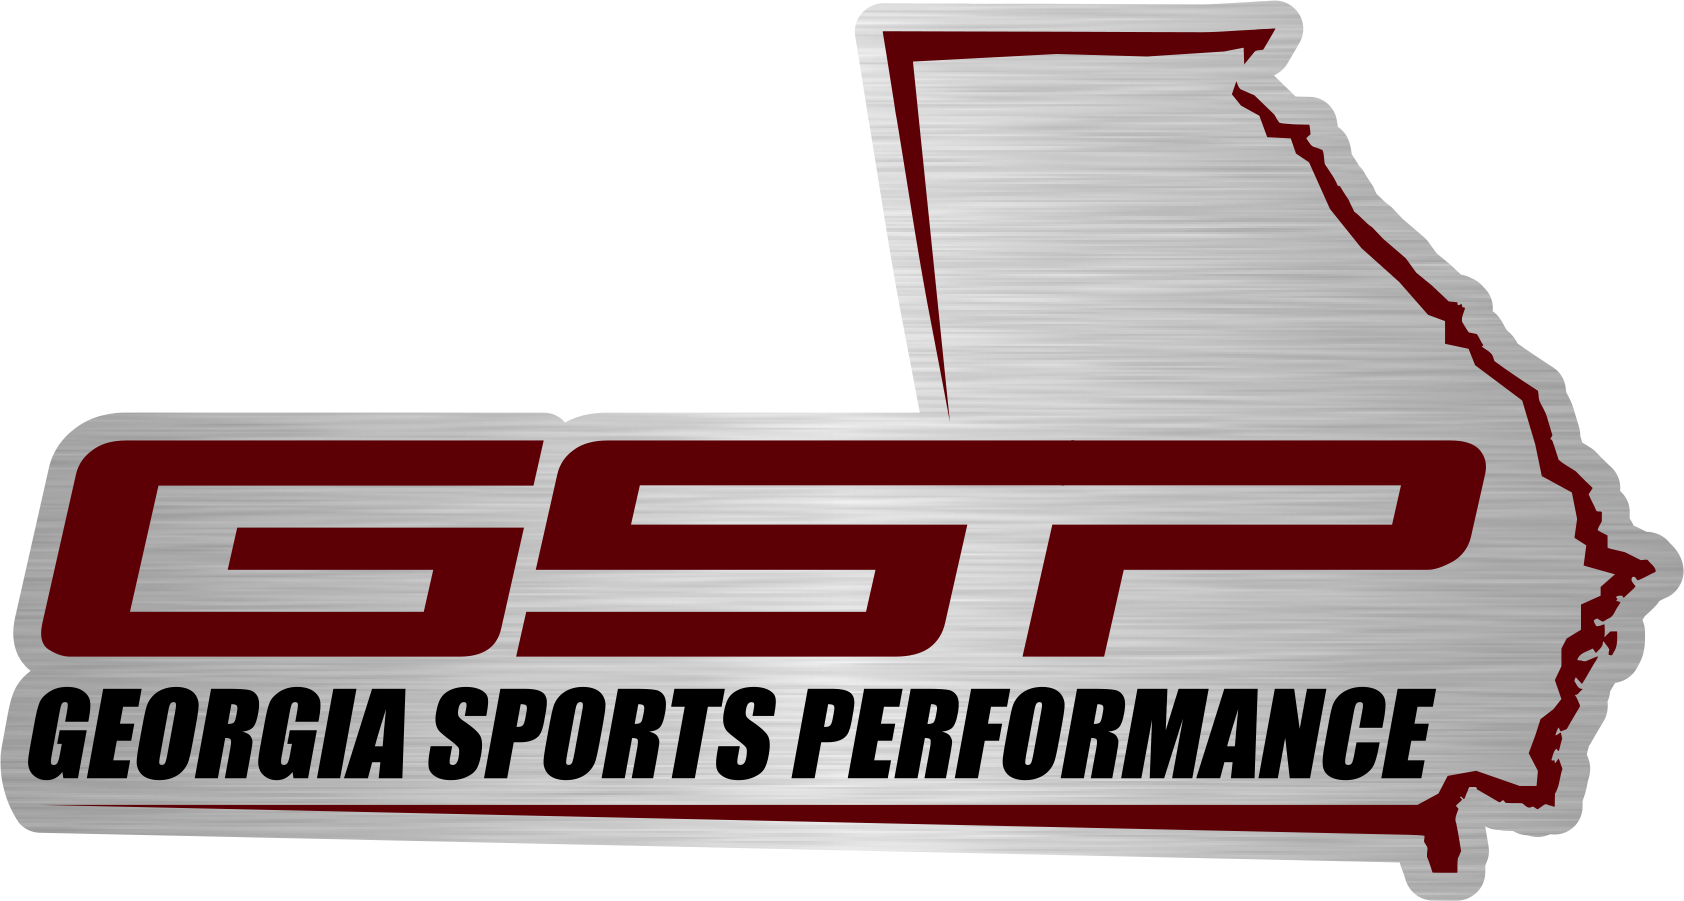 Georgia Sports Performance Retina Logo